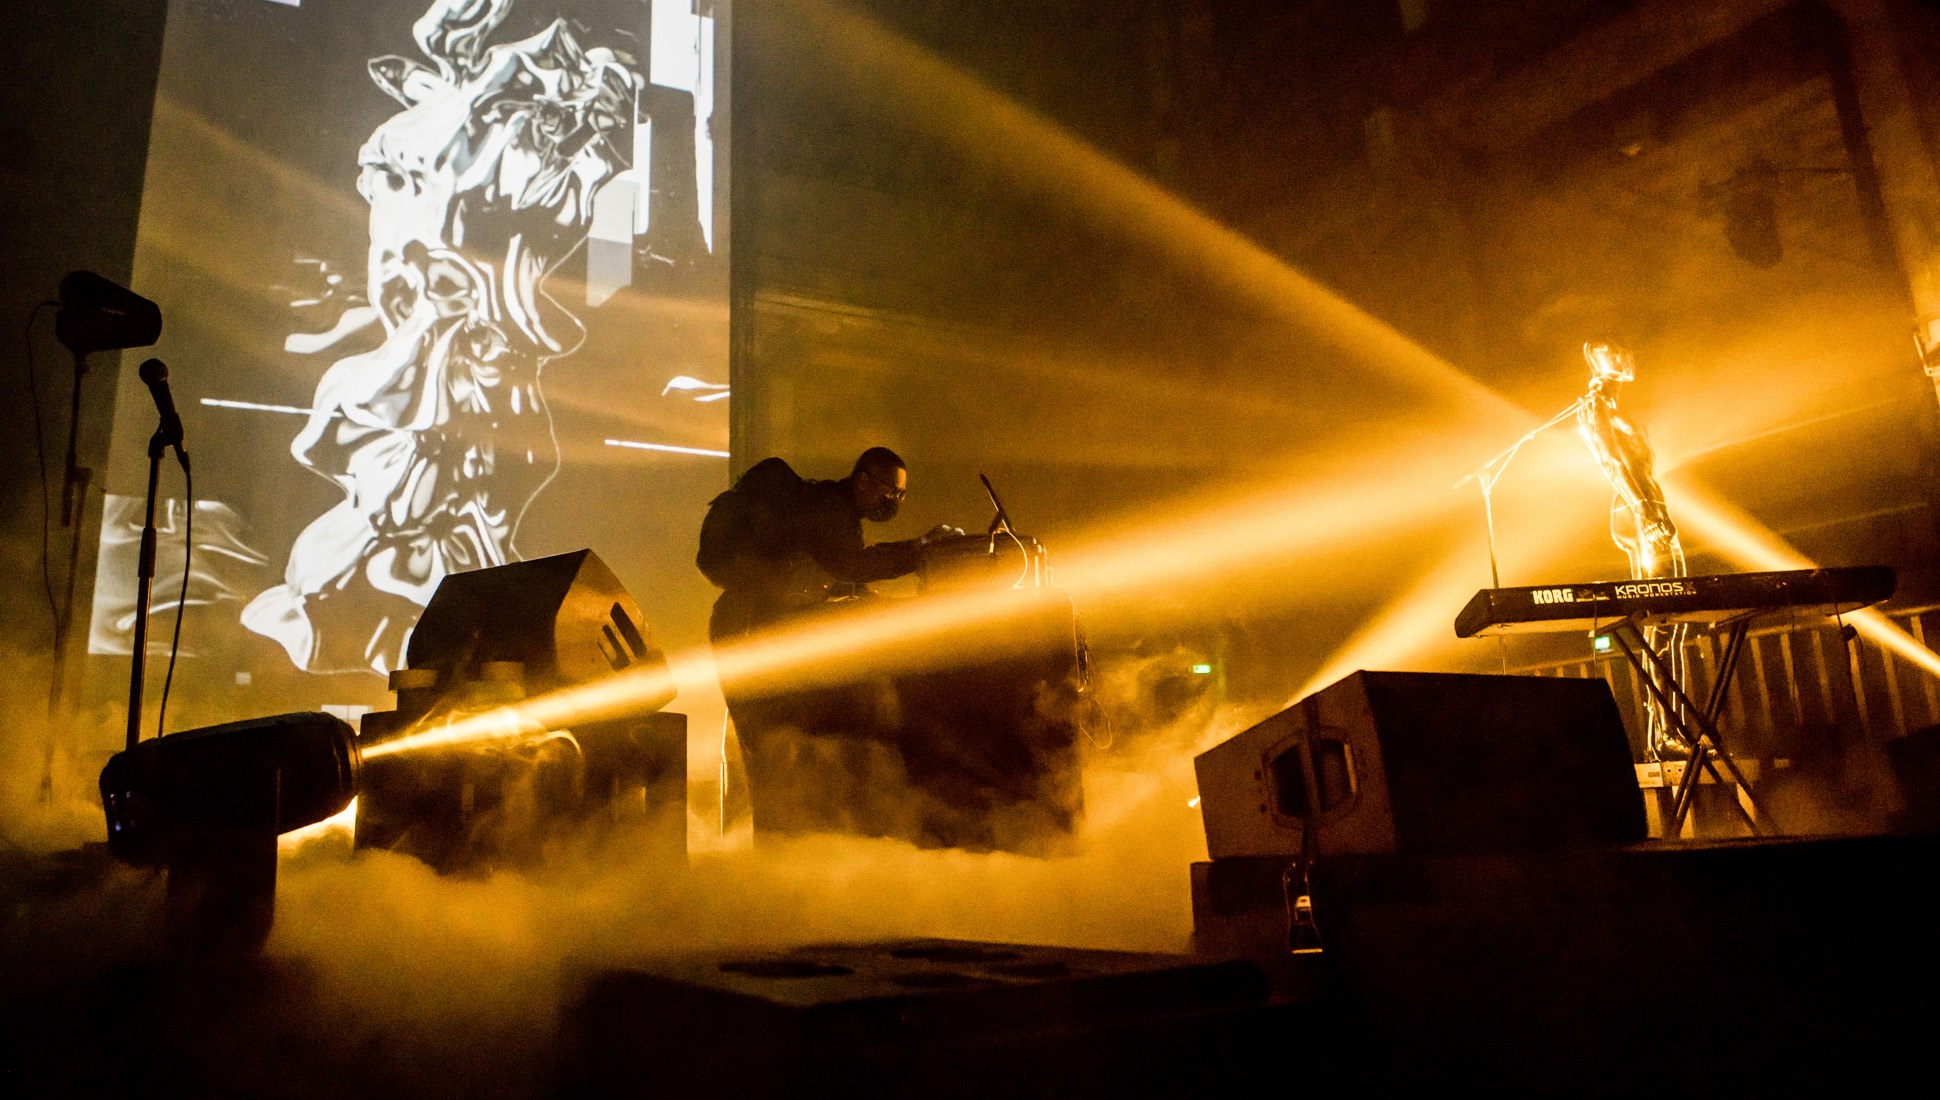 Berlin Atonal 2018 highlighted the changing face of the